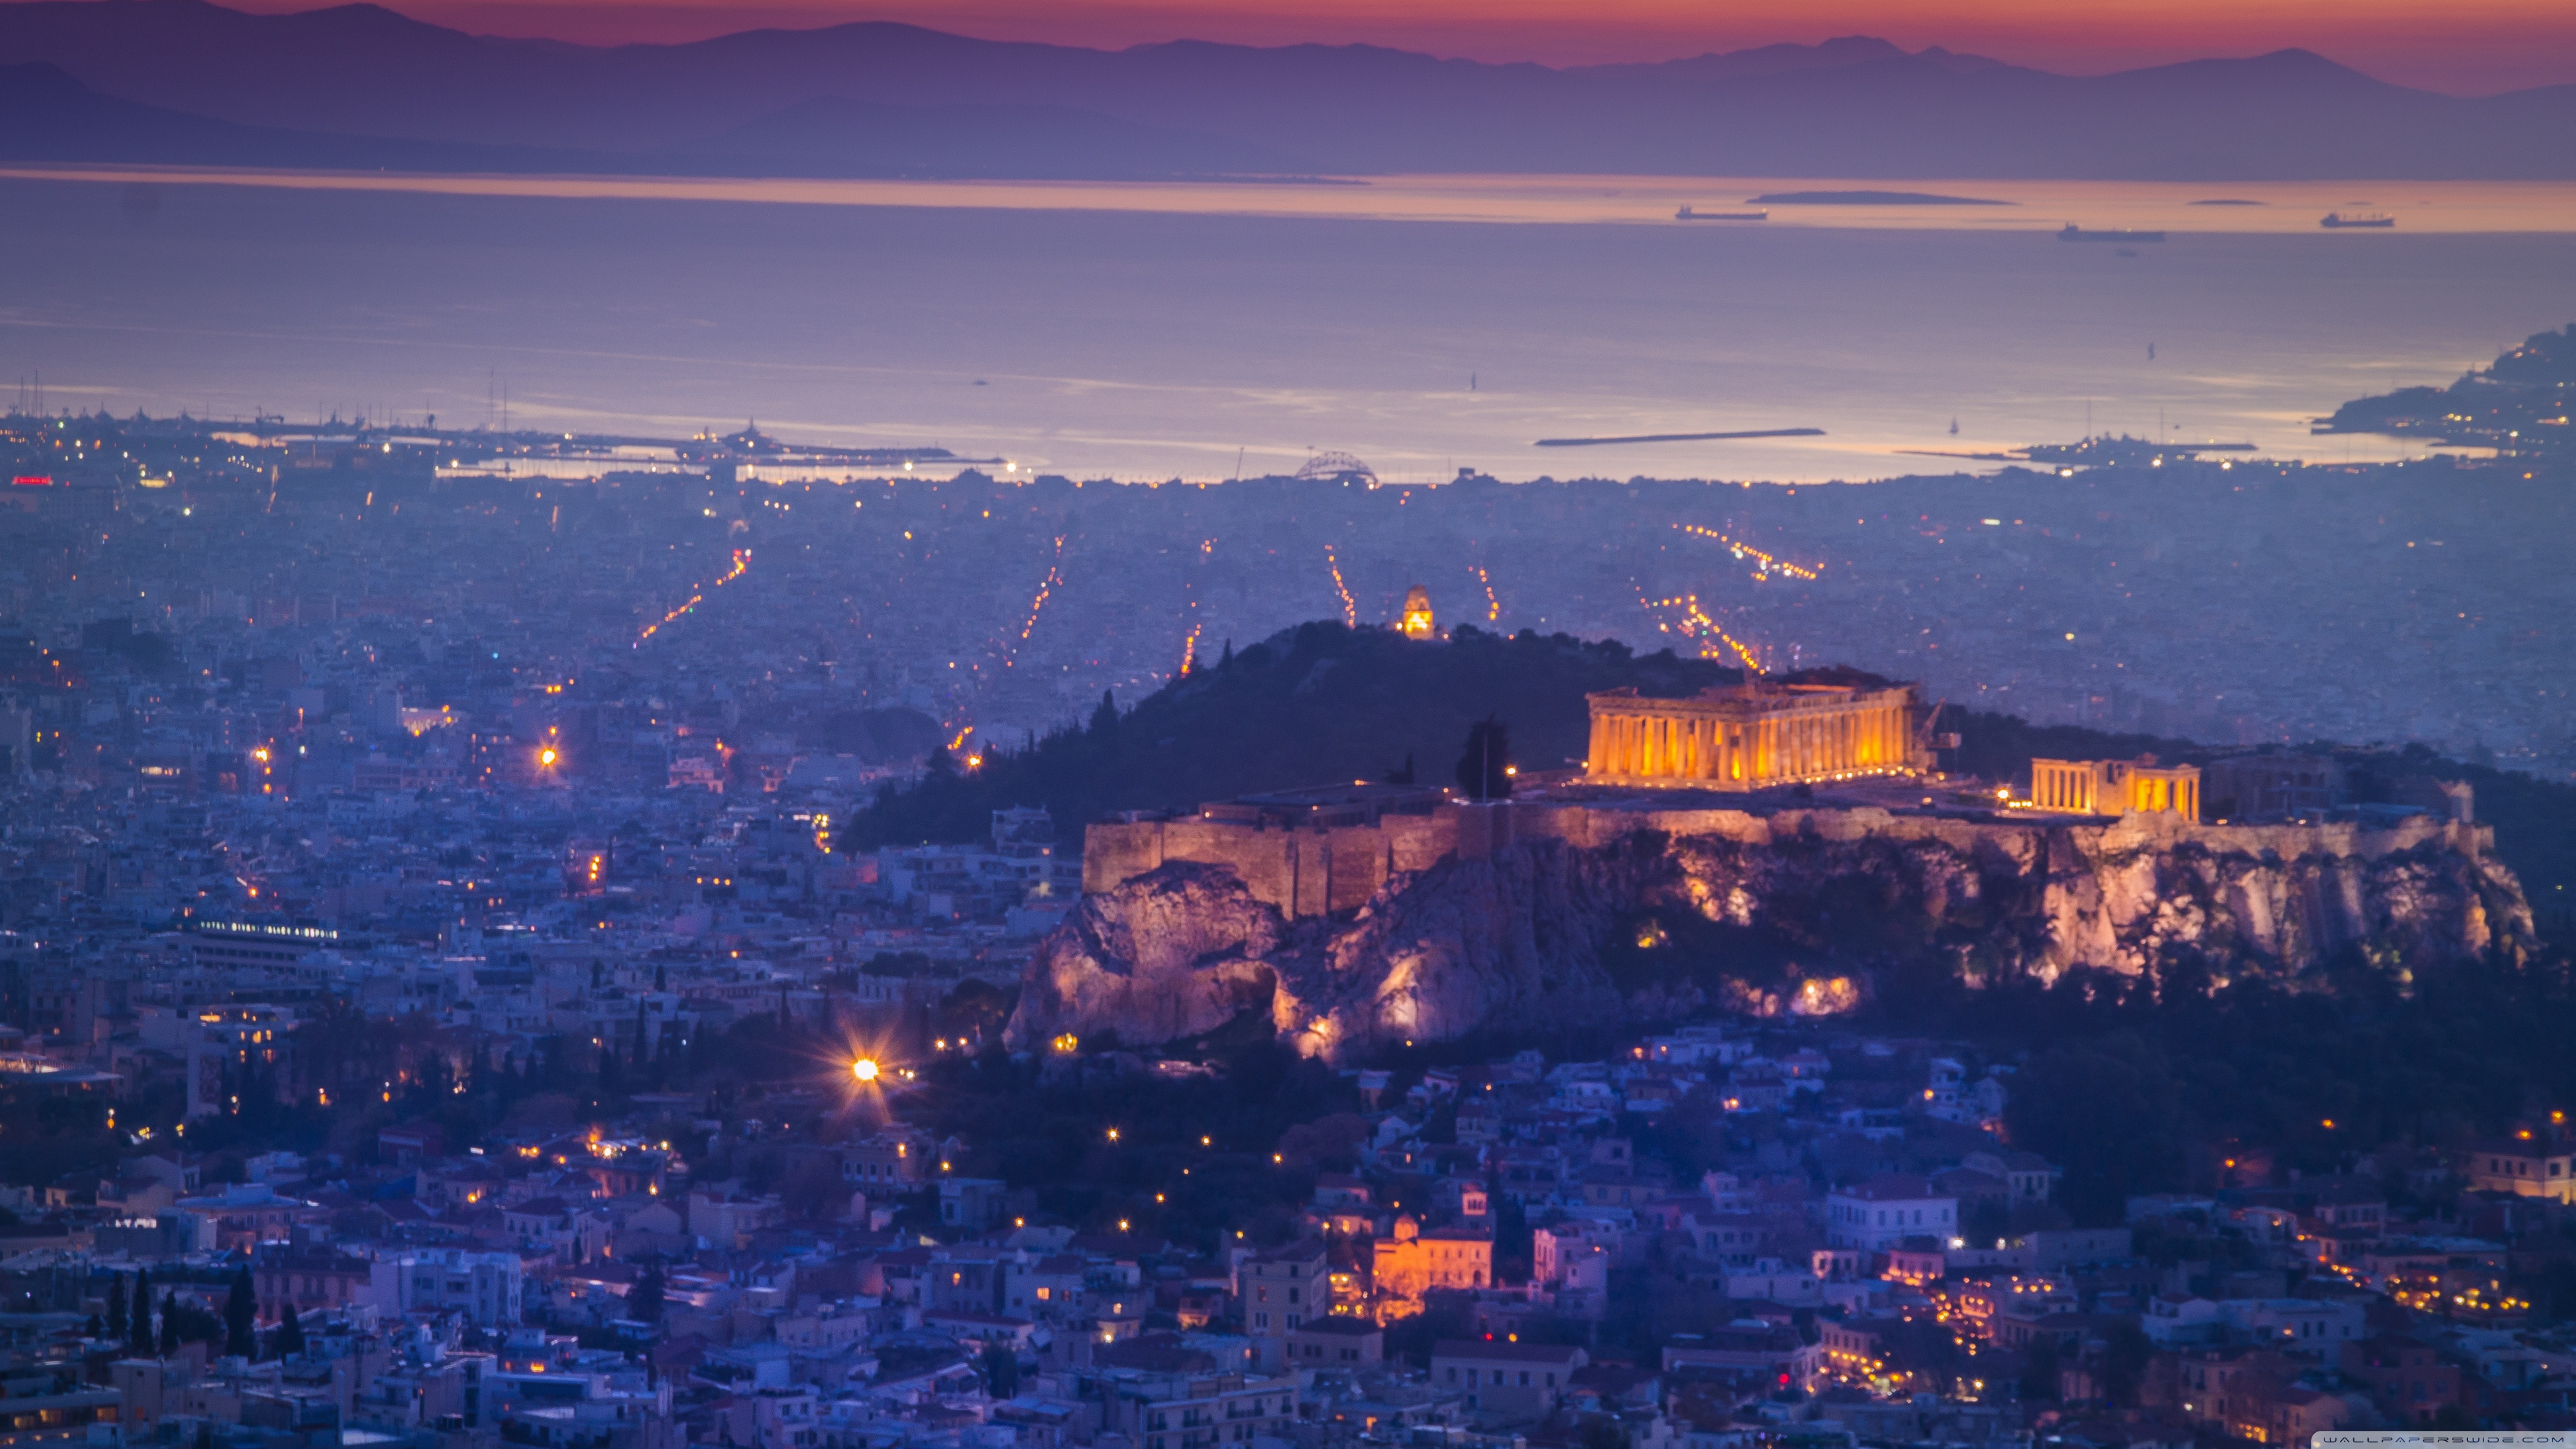 Athens by night 4K HD Desktop Wallpaper for 4K Ultra HD TV 3840x2160